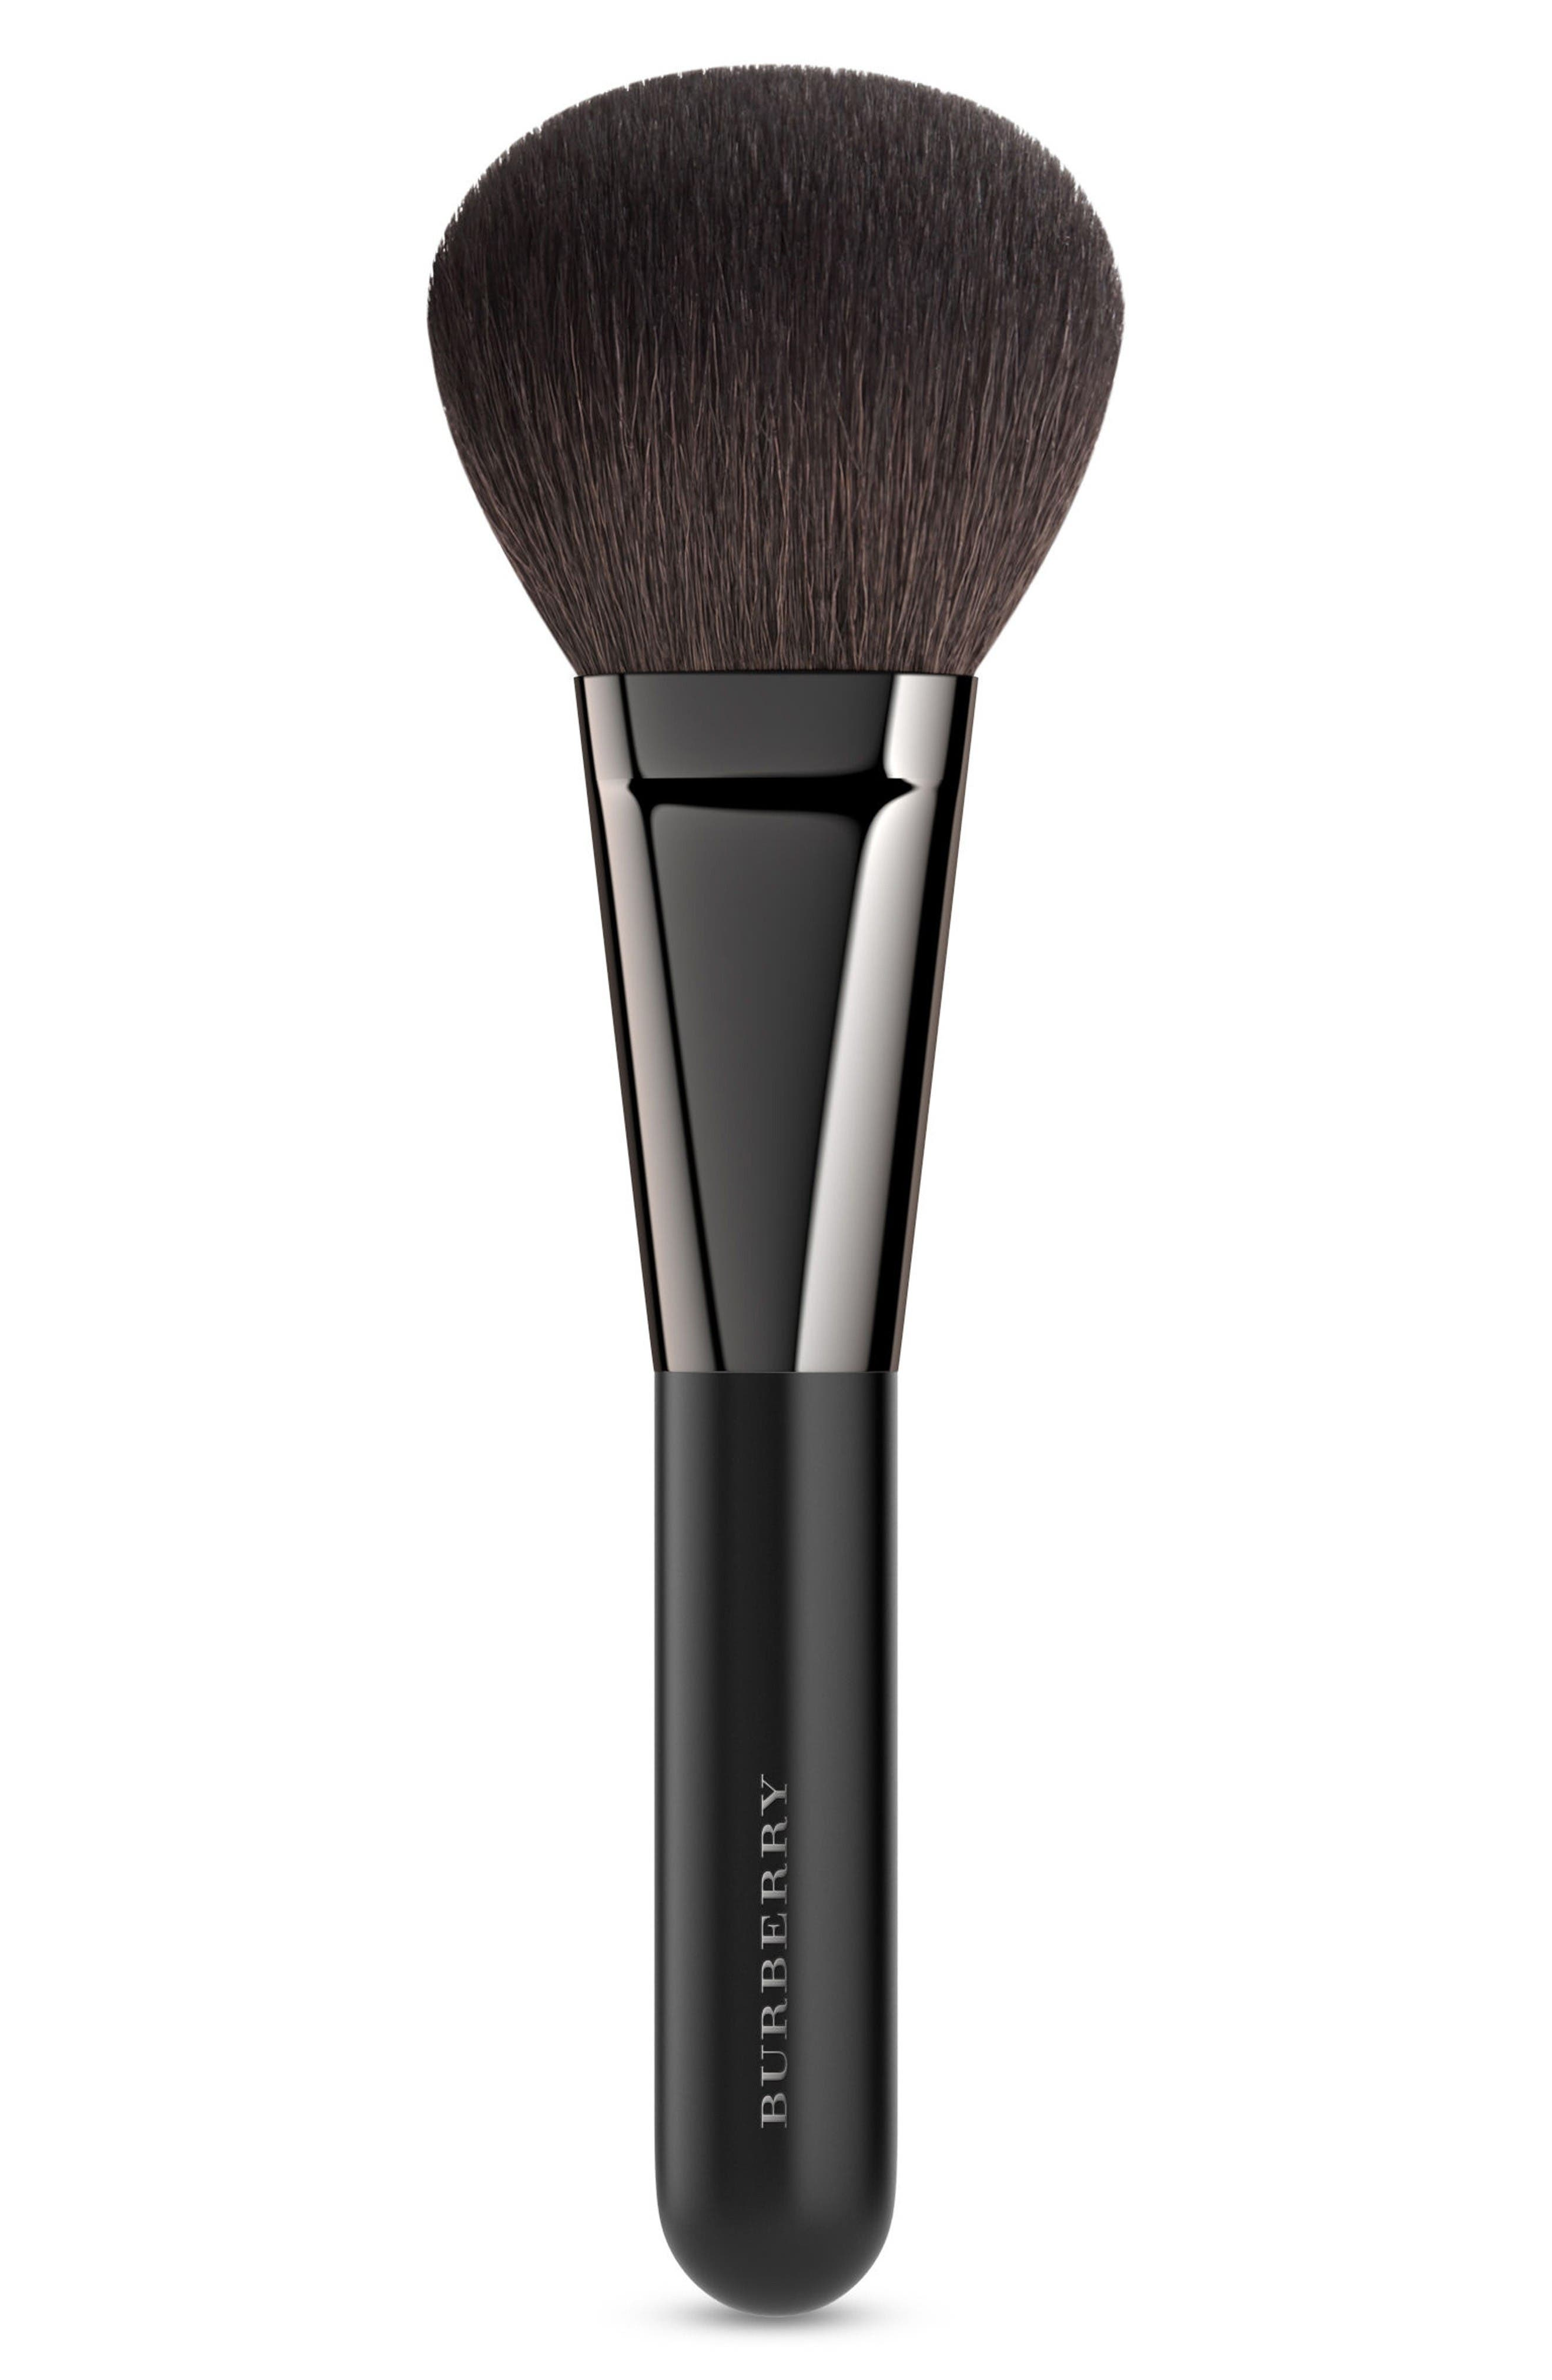 Main Image - Burberry Beauty Powder Brush No. 1